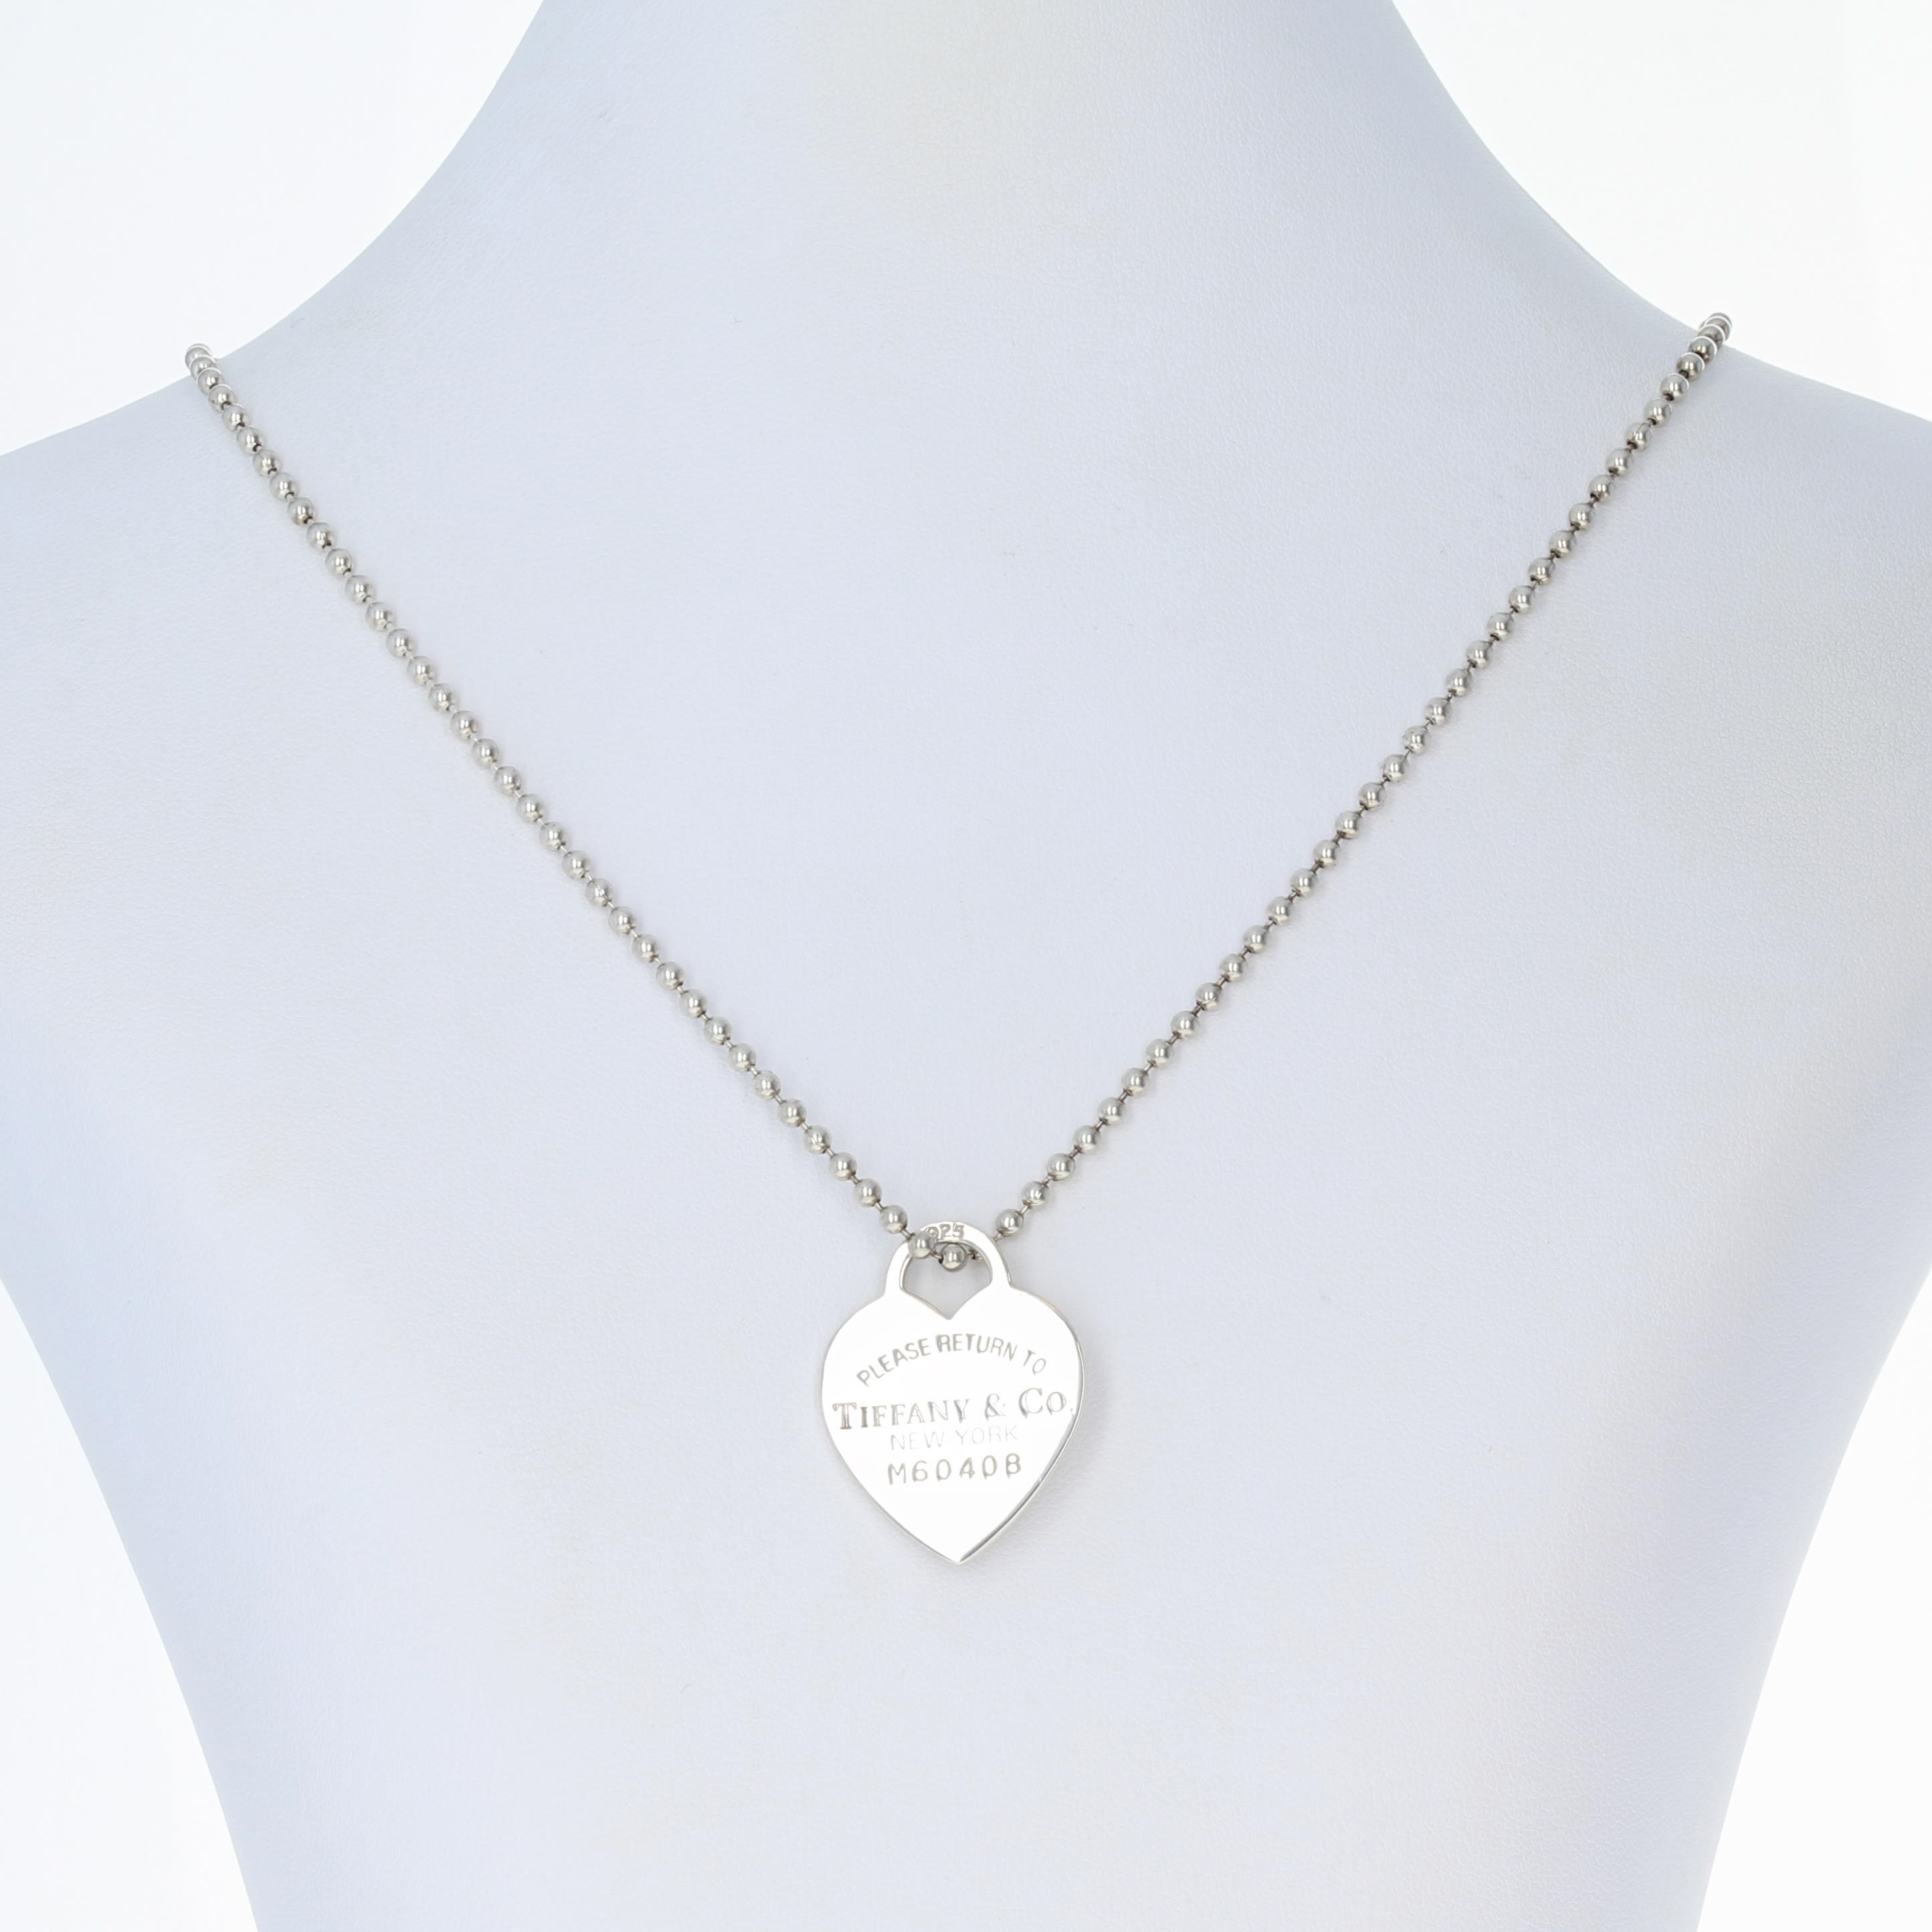 Tiffany co heart tag pendant necklace 34 14 sterling silver click thumbnails to enlarge aloadofball Gallery